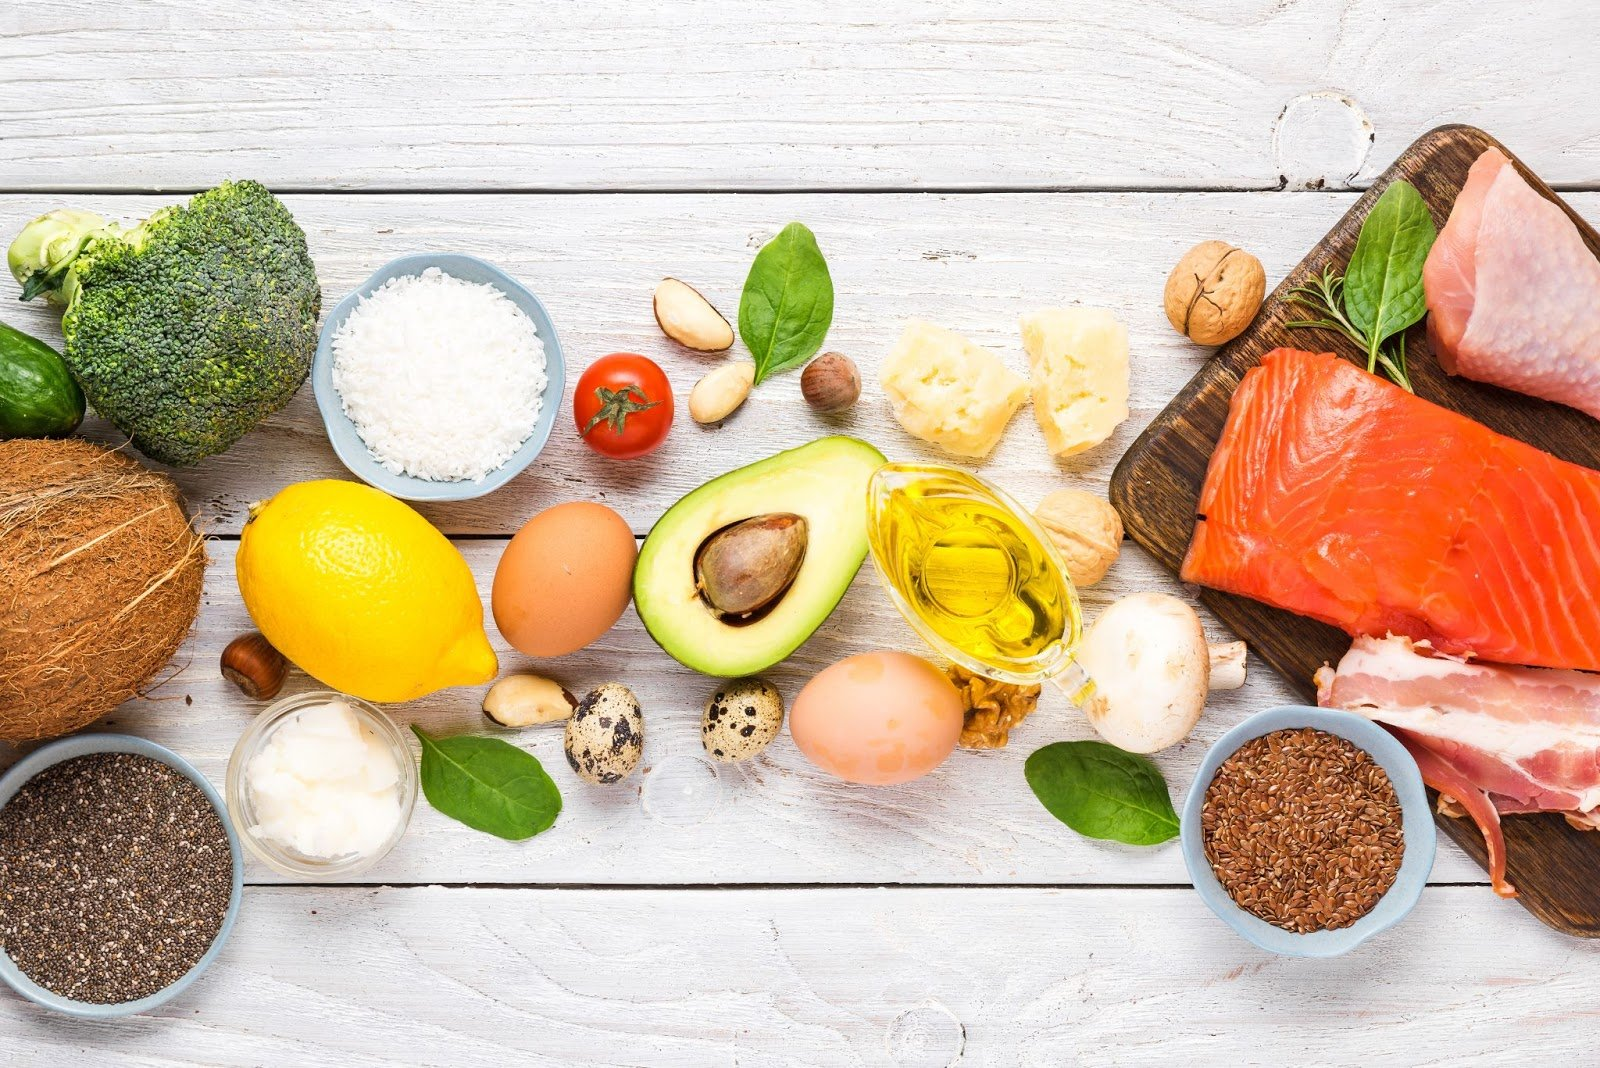 Variety of healthy foods on a white wooden surface